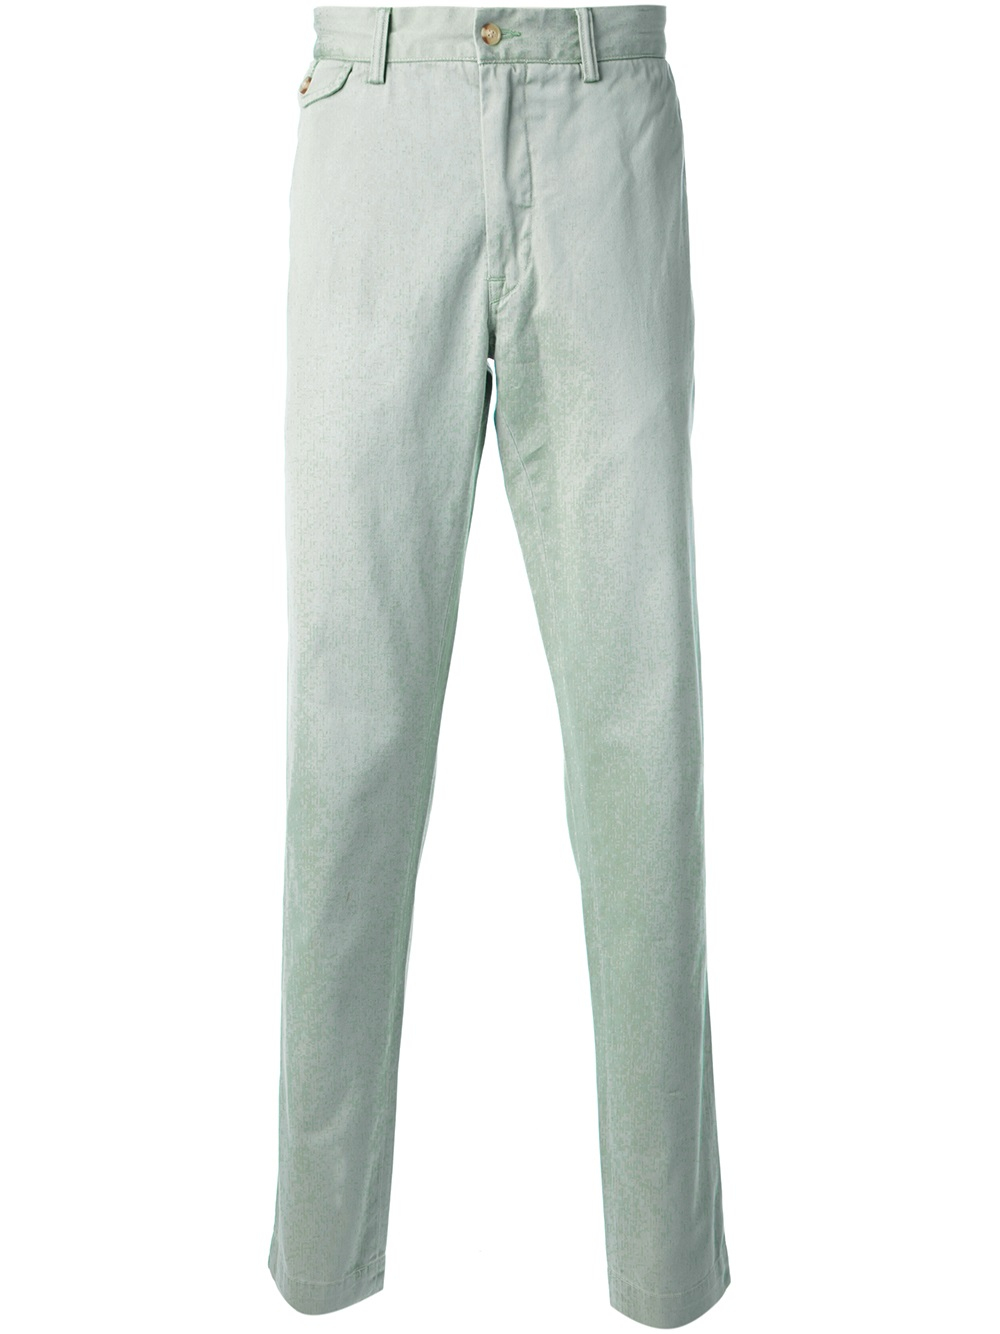 Lyst Polo Ralph Lauren Greenwich Chinos In Green For Men